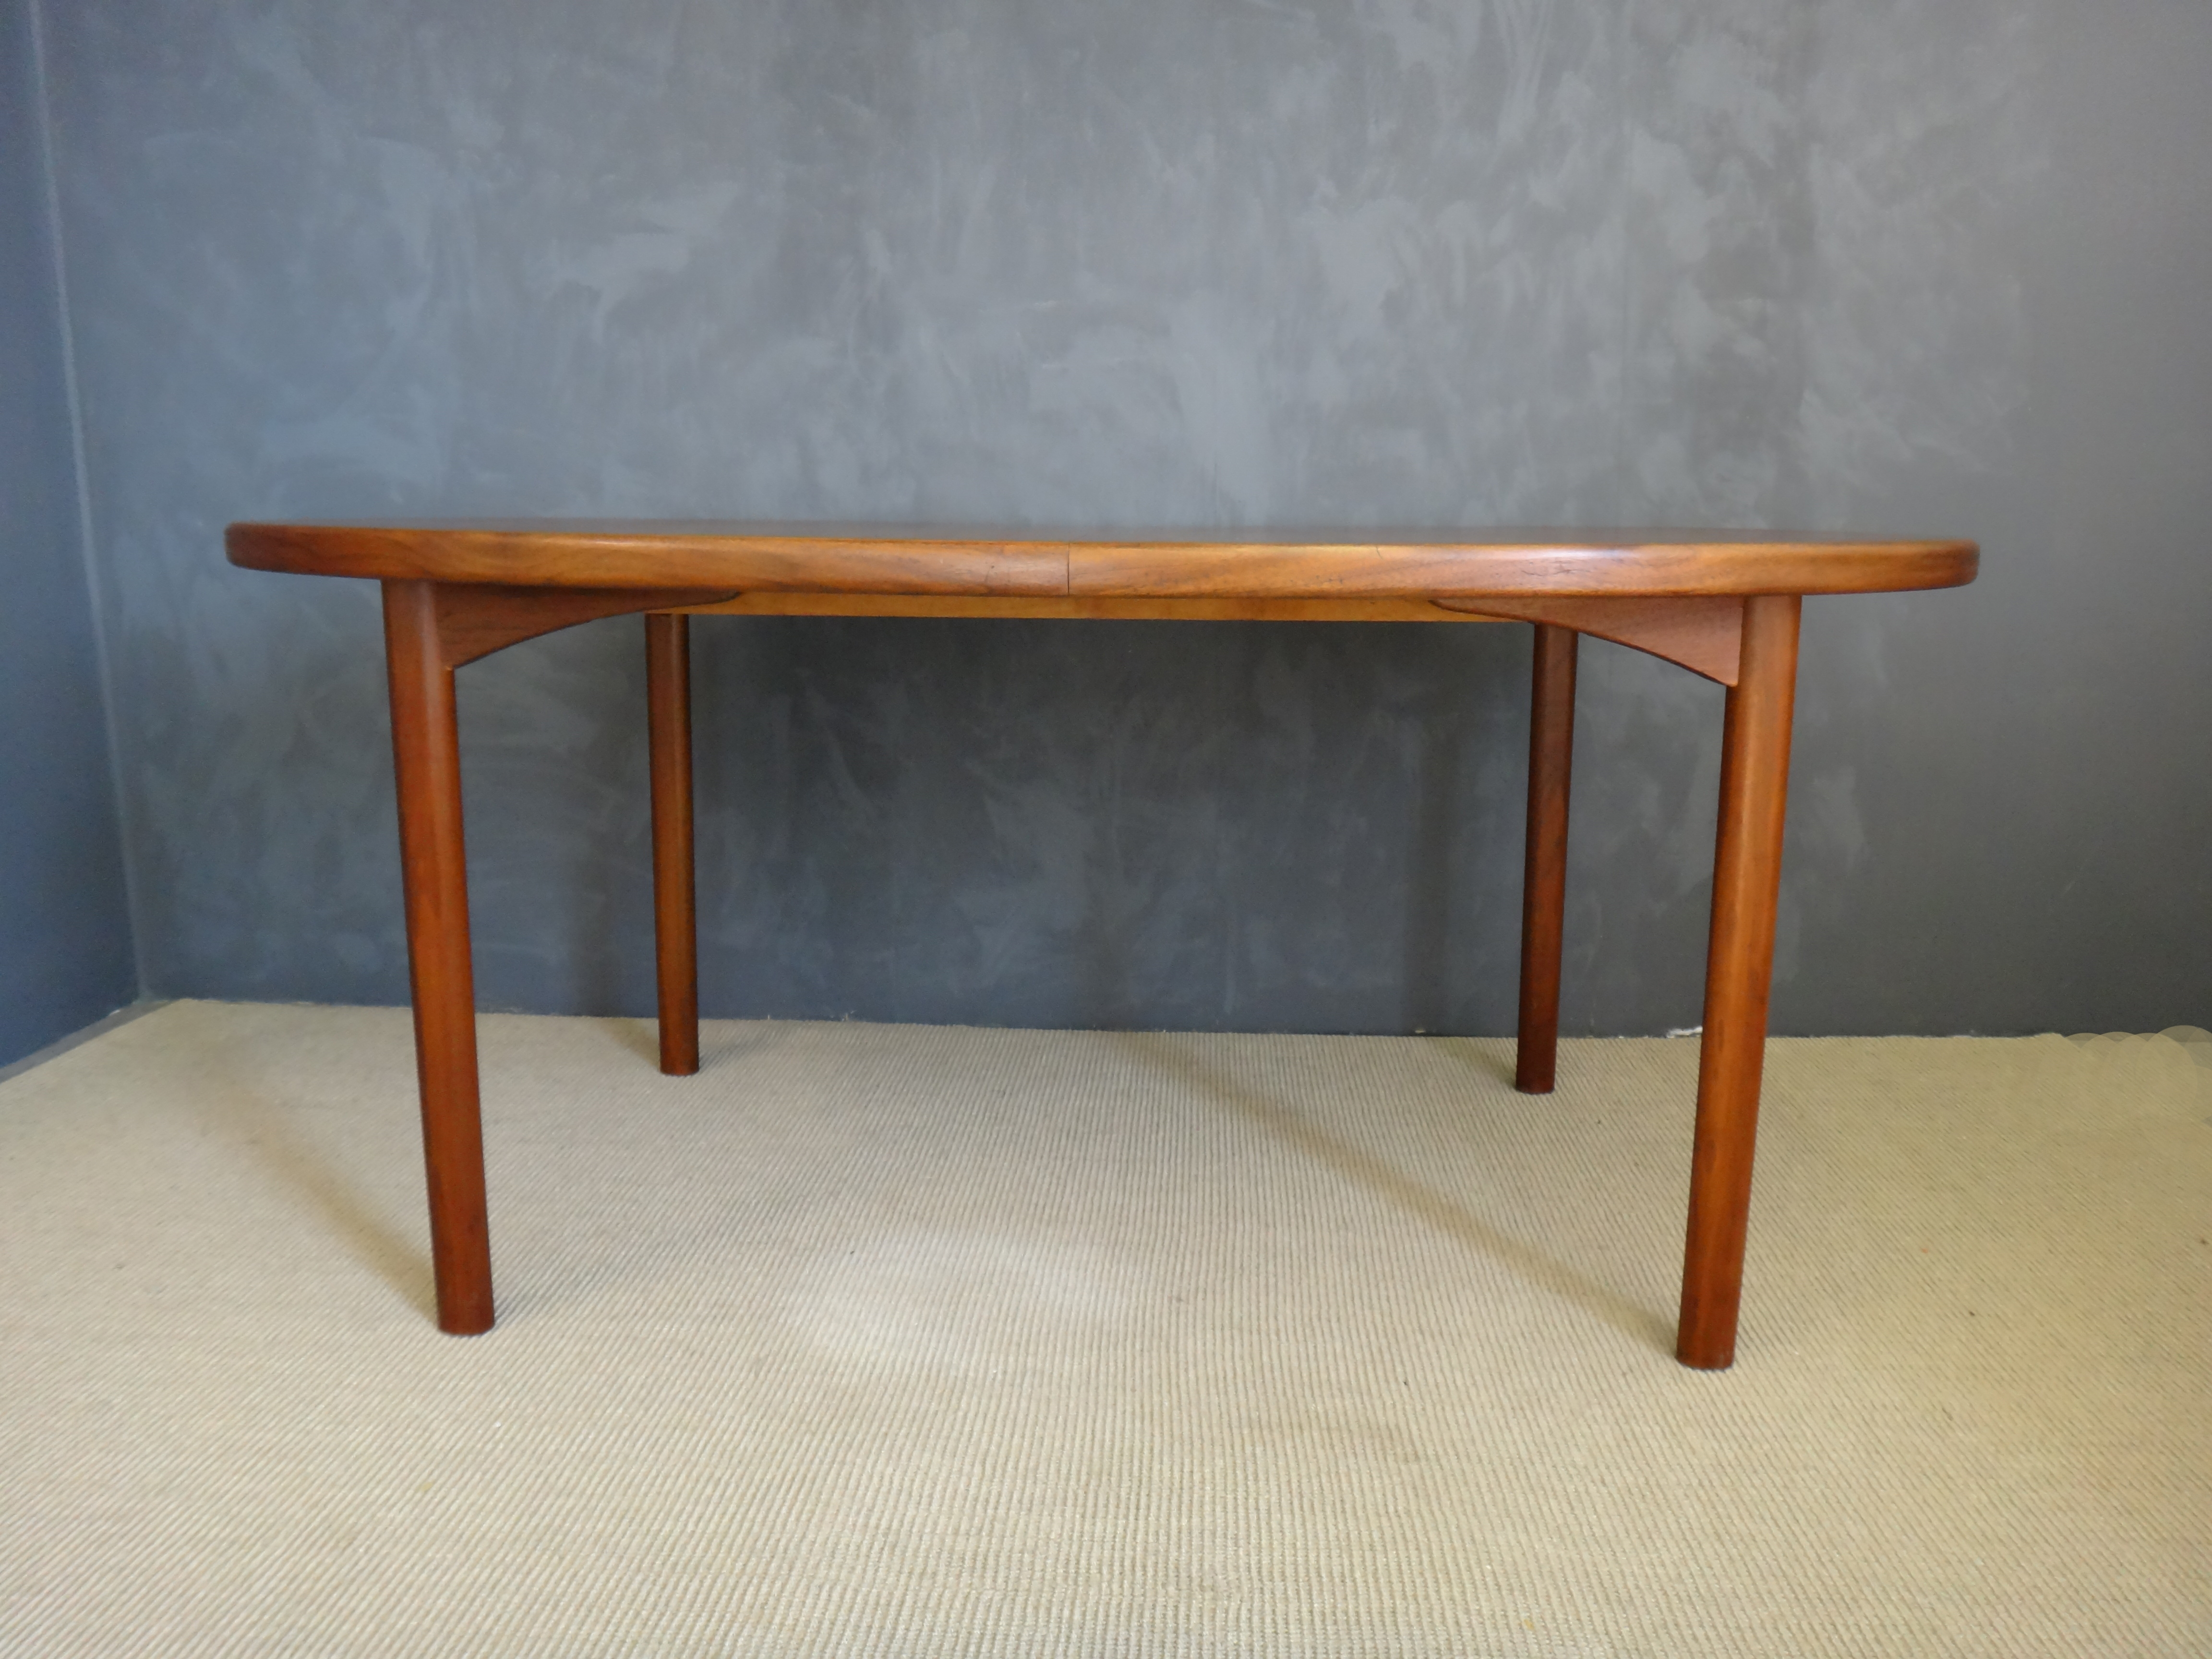 Most Recent Dux Danish Modern Teak Oval Dining Table – Retrocraft Design In Oval Dining Tables For Sale (View 21 of 25)